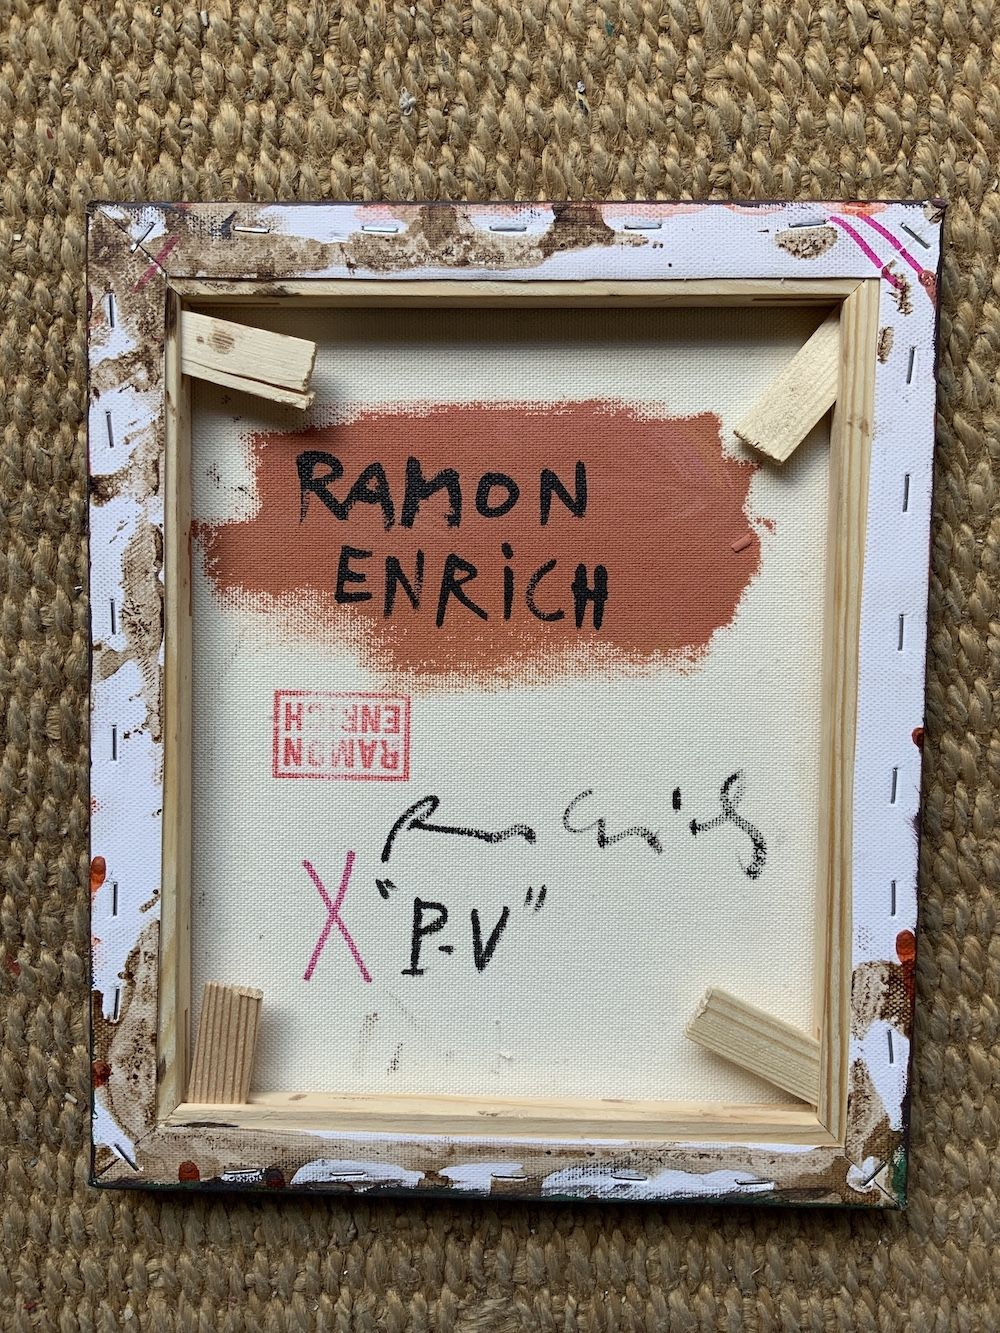 P-V - Ramon Enrich - Contemporary painting - detail 4